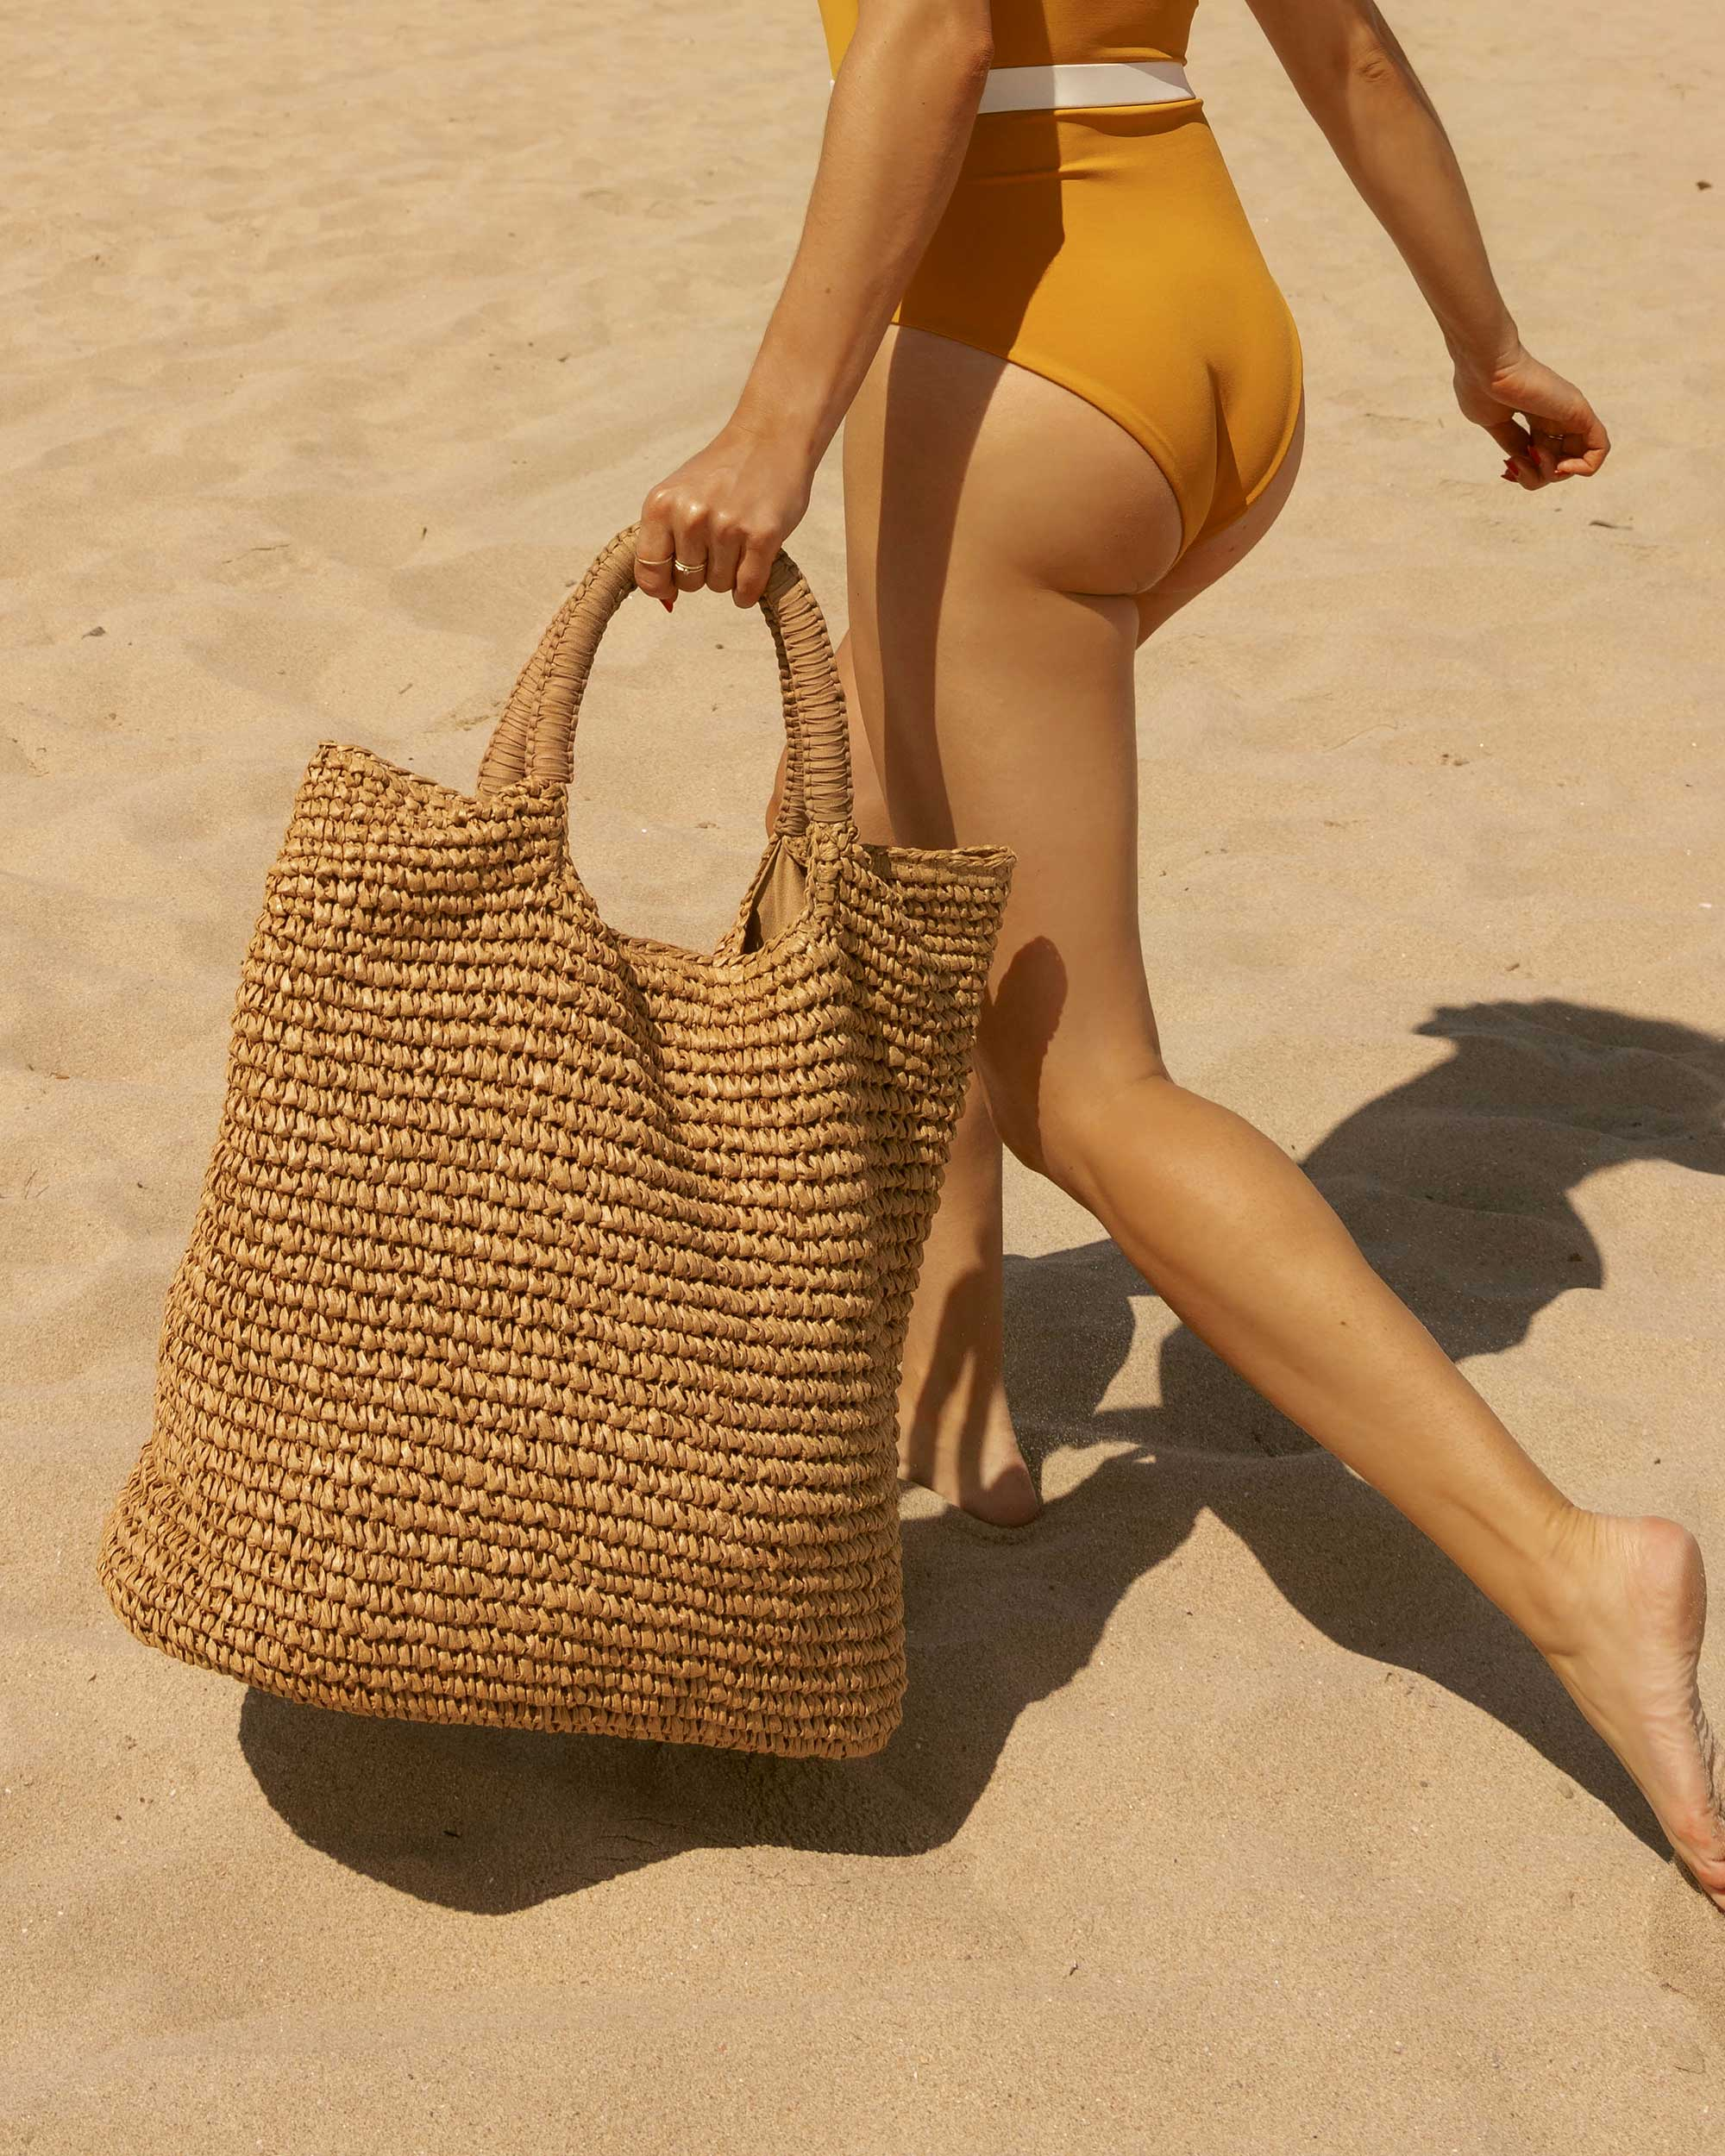 Sarah Butler of Sarah Styles Seattle LSpace Yellow One Piece Swimsuit with belt and Fallon & Royce Mel Straw Oversize Straw Tote Beach Bag in Newport Beach, California for the perfect beach outfit  | @sarahchristine -1.jpg